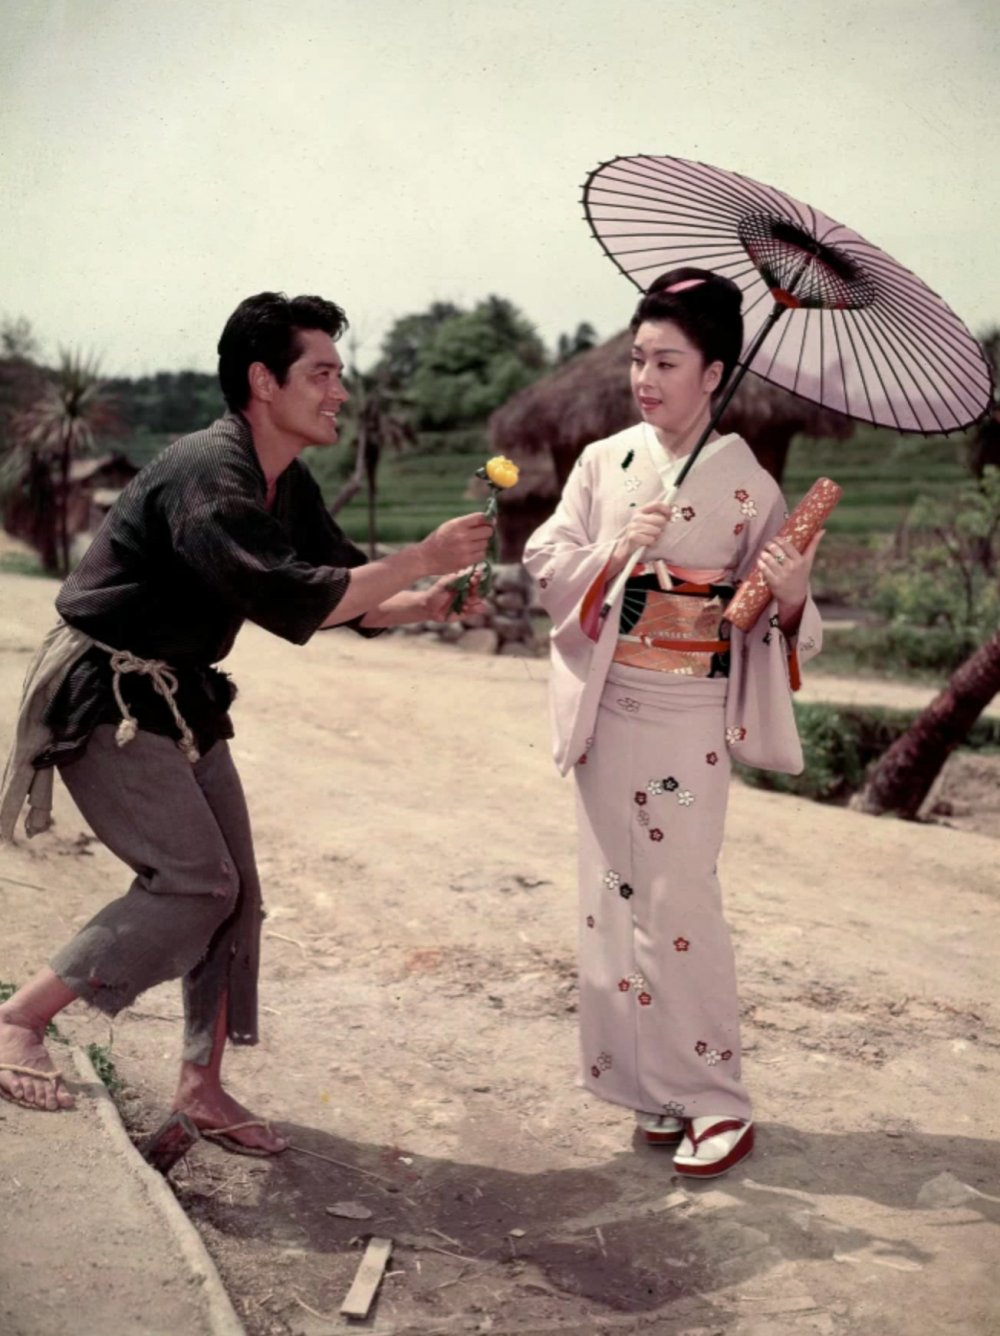 Kyo as Lotus Blossom in The Teahouse of the August Moon (1956)